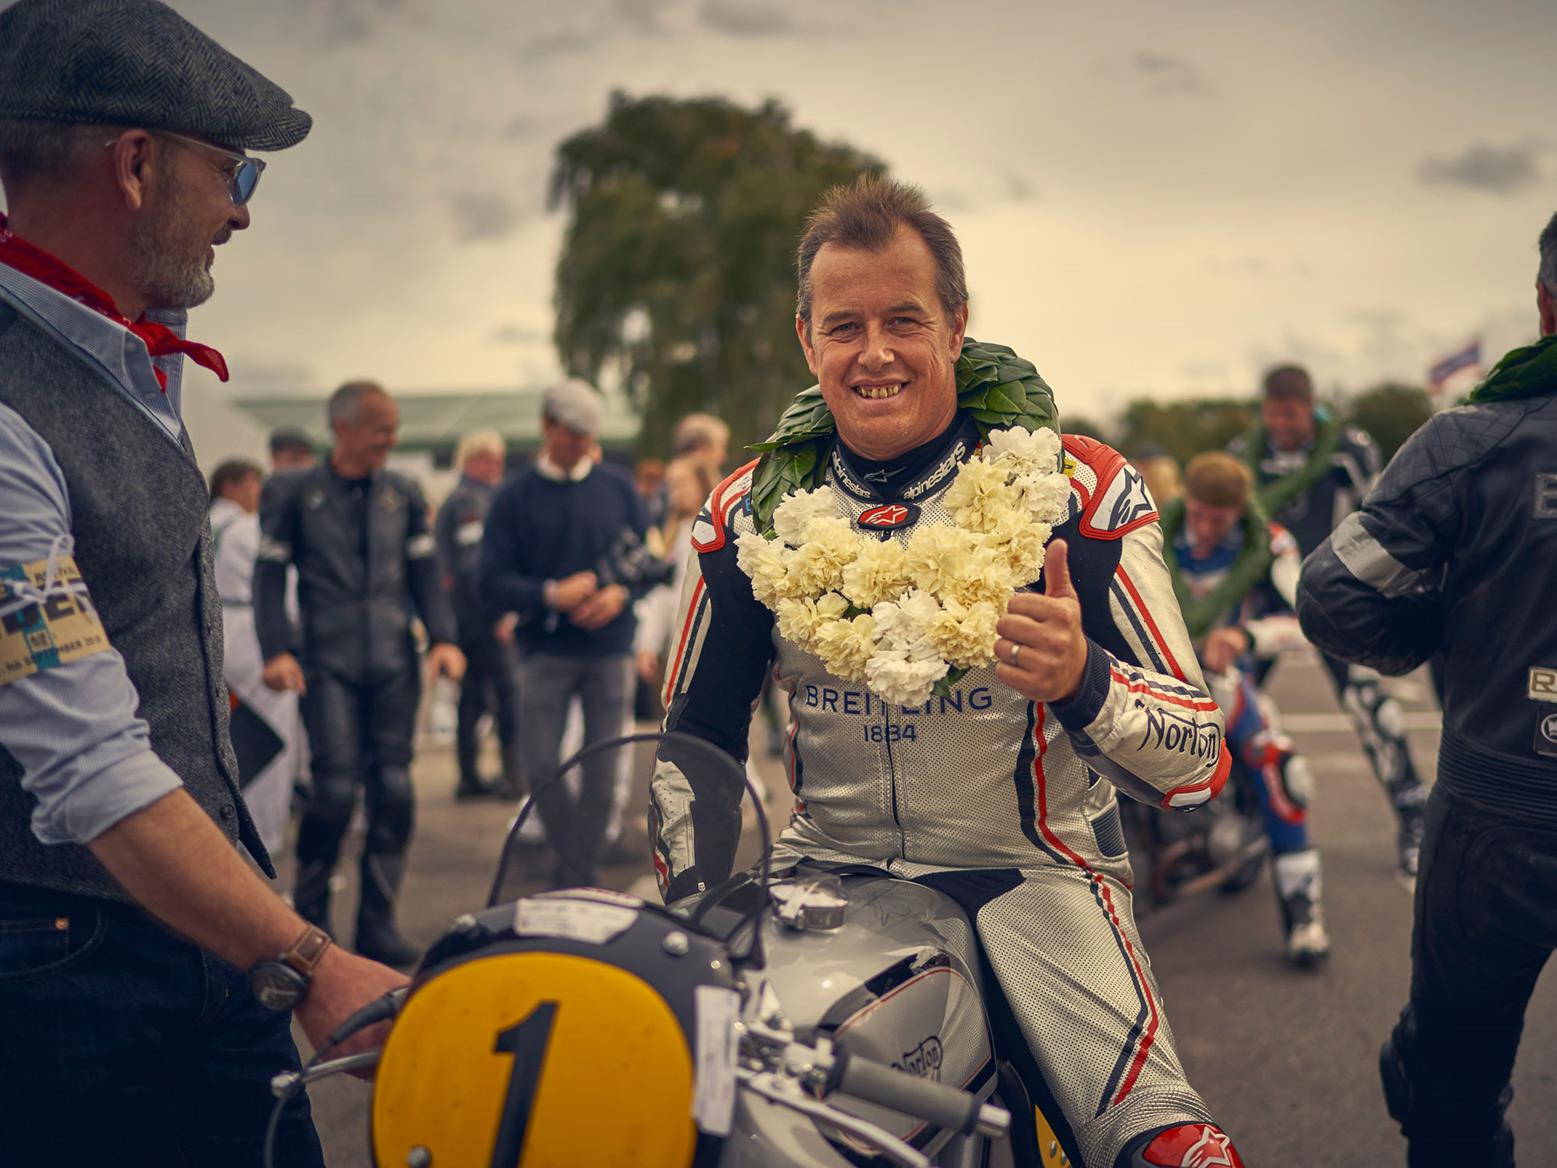 John McGuinness at the Goodwood Revival, picture credit: Nigel Harniman/Goodwood